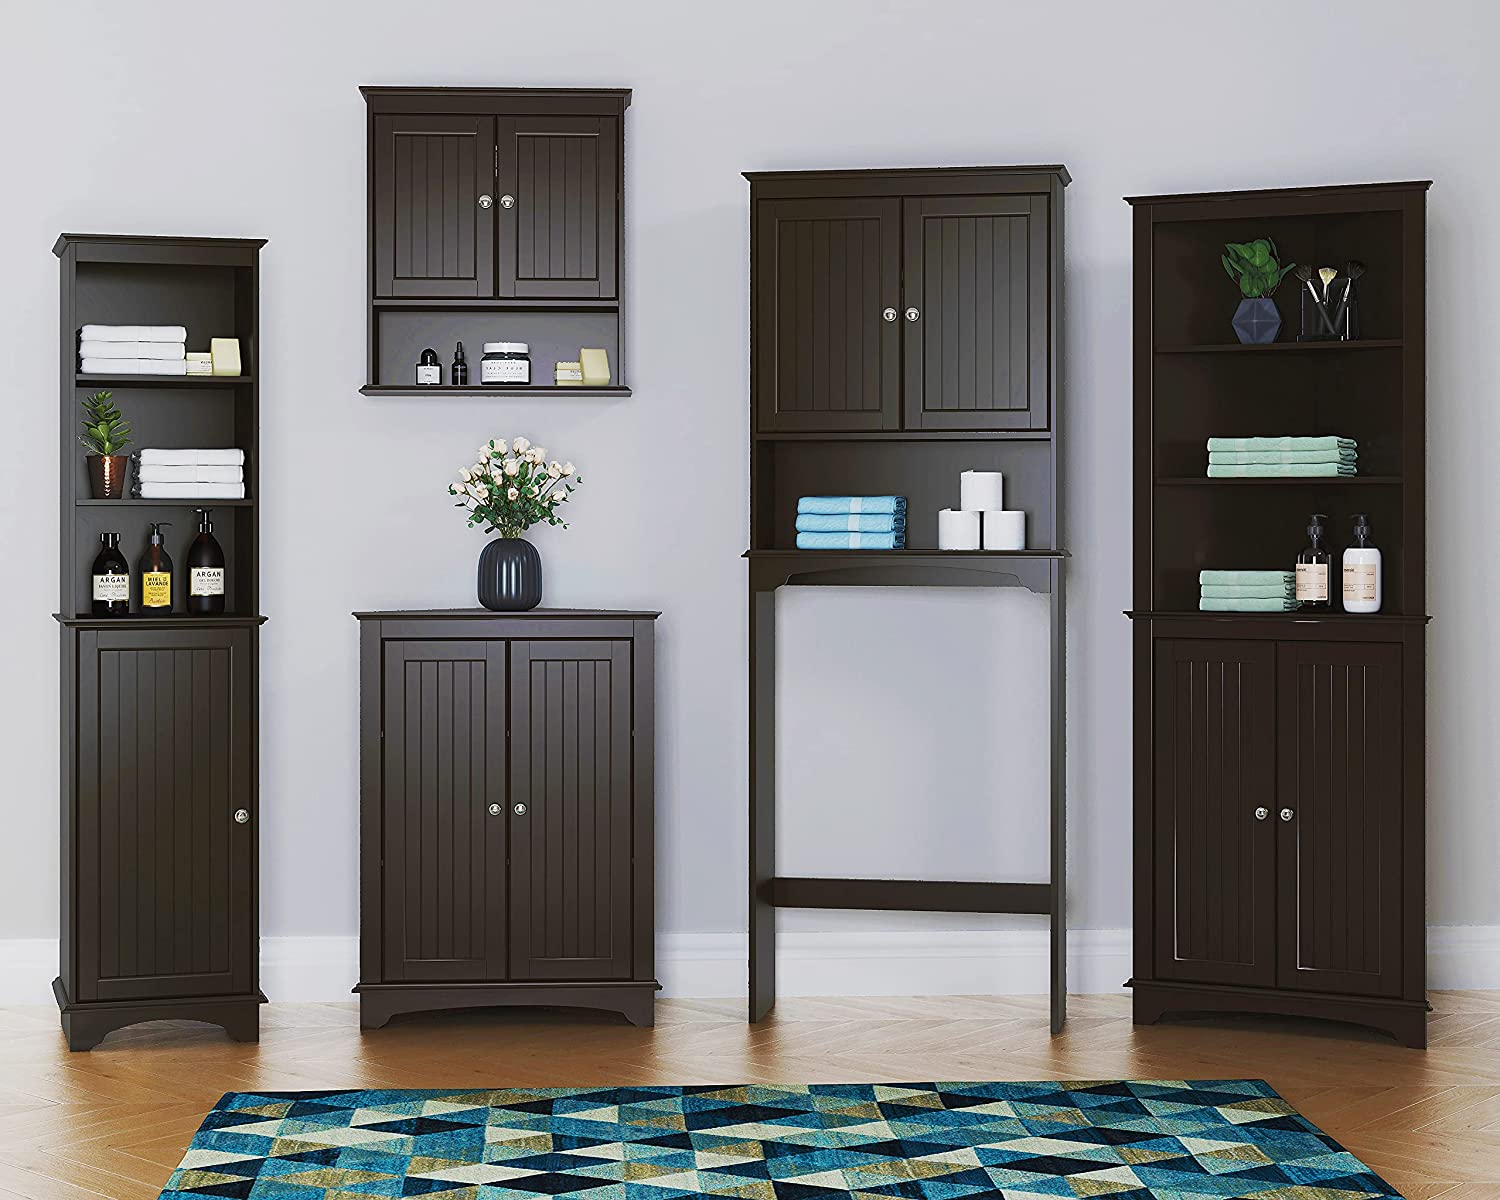 Buy Spirich Home Bathroom Cabinet Wall Mounted With Doors Wood Hanging Cabinet Wall Cabinets With Doors And Shelves Over The Toilet Bathroom Wall Cabinet Espresso Online In Vietnam B08sbrrmdv